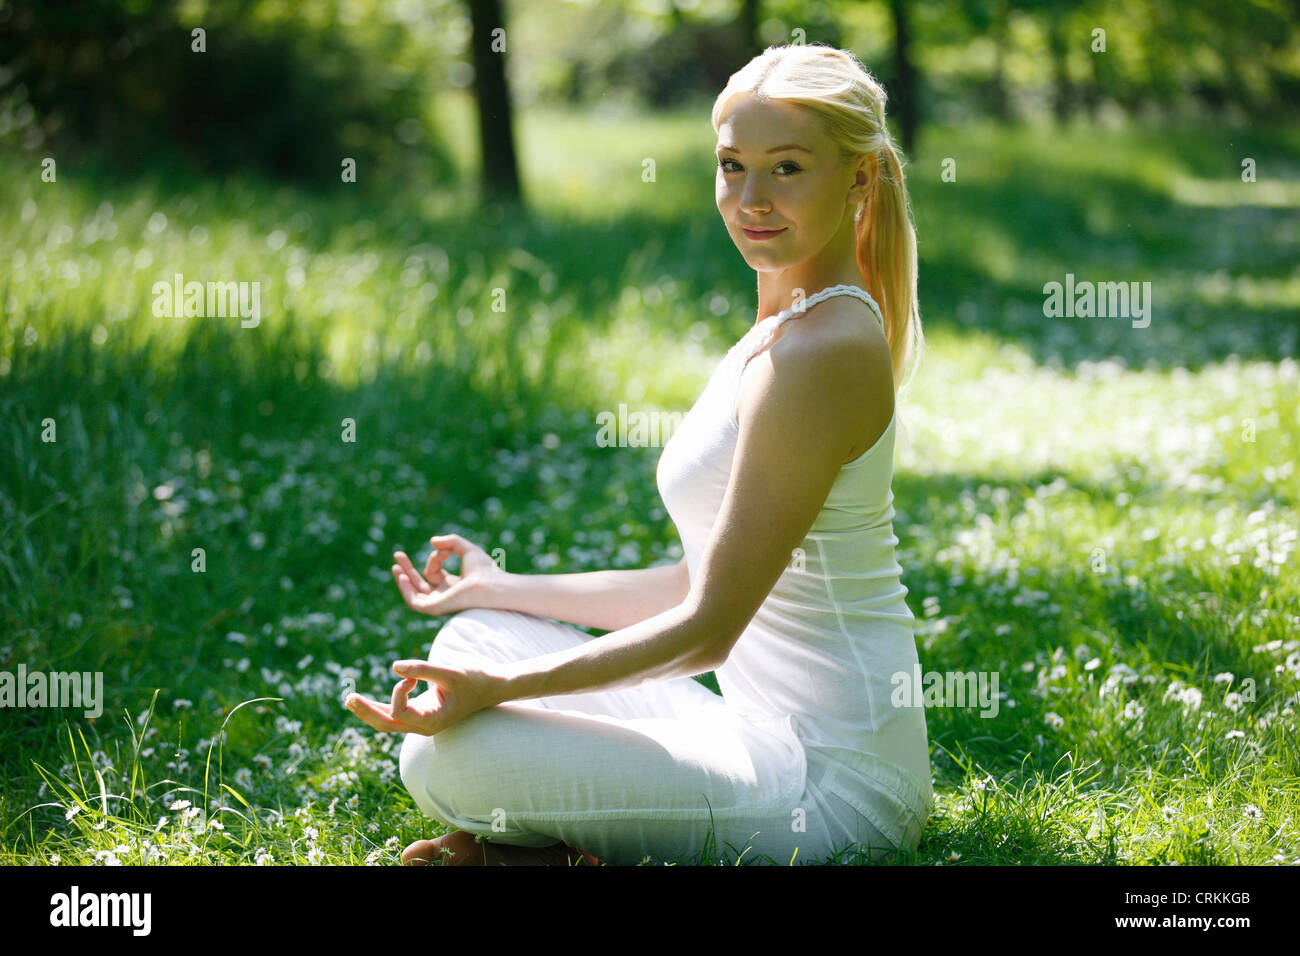 A young woman practicing yoga outside, looking to camera - Stock Image